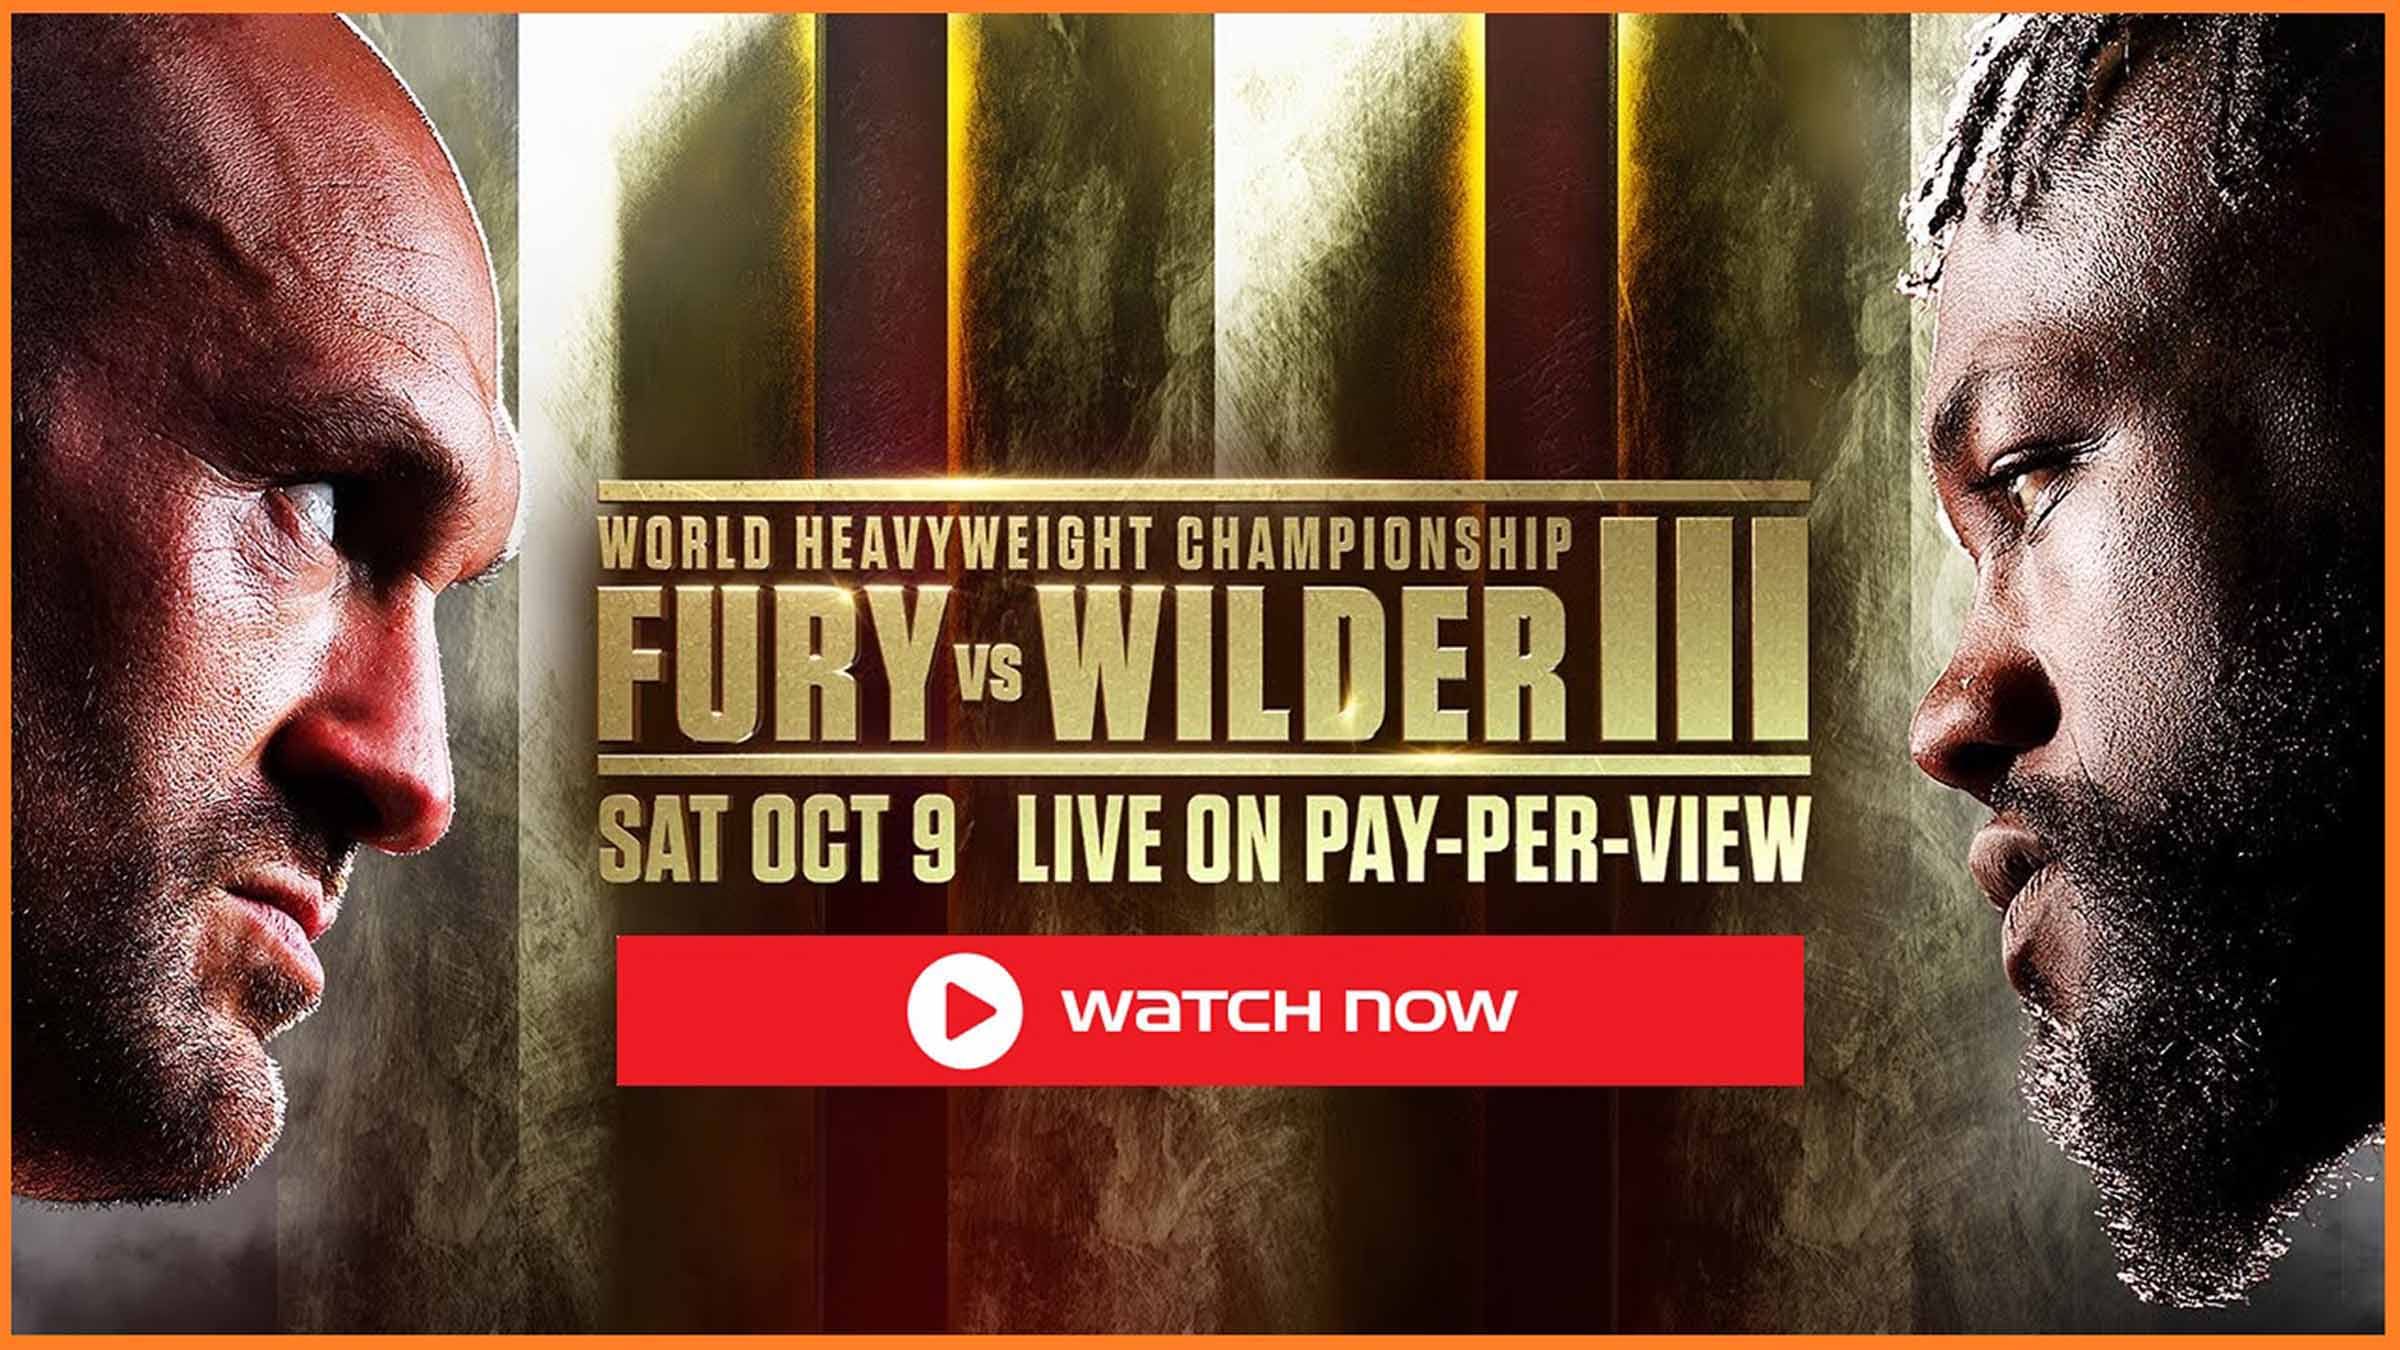 Boxing Fury vs Wilder 3 Live Stream, Reddit free anywhere – The Daily Quirk